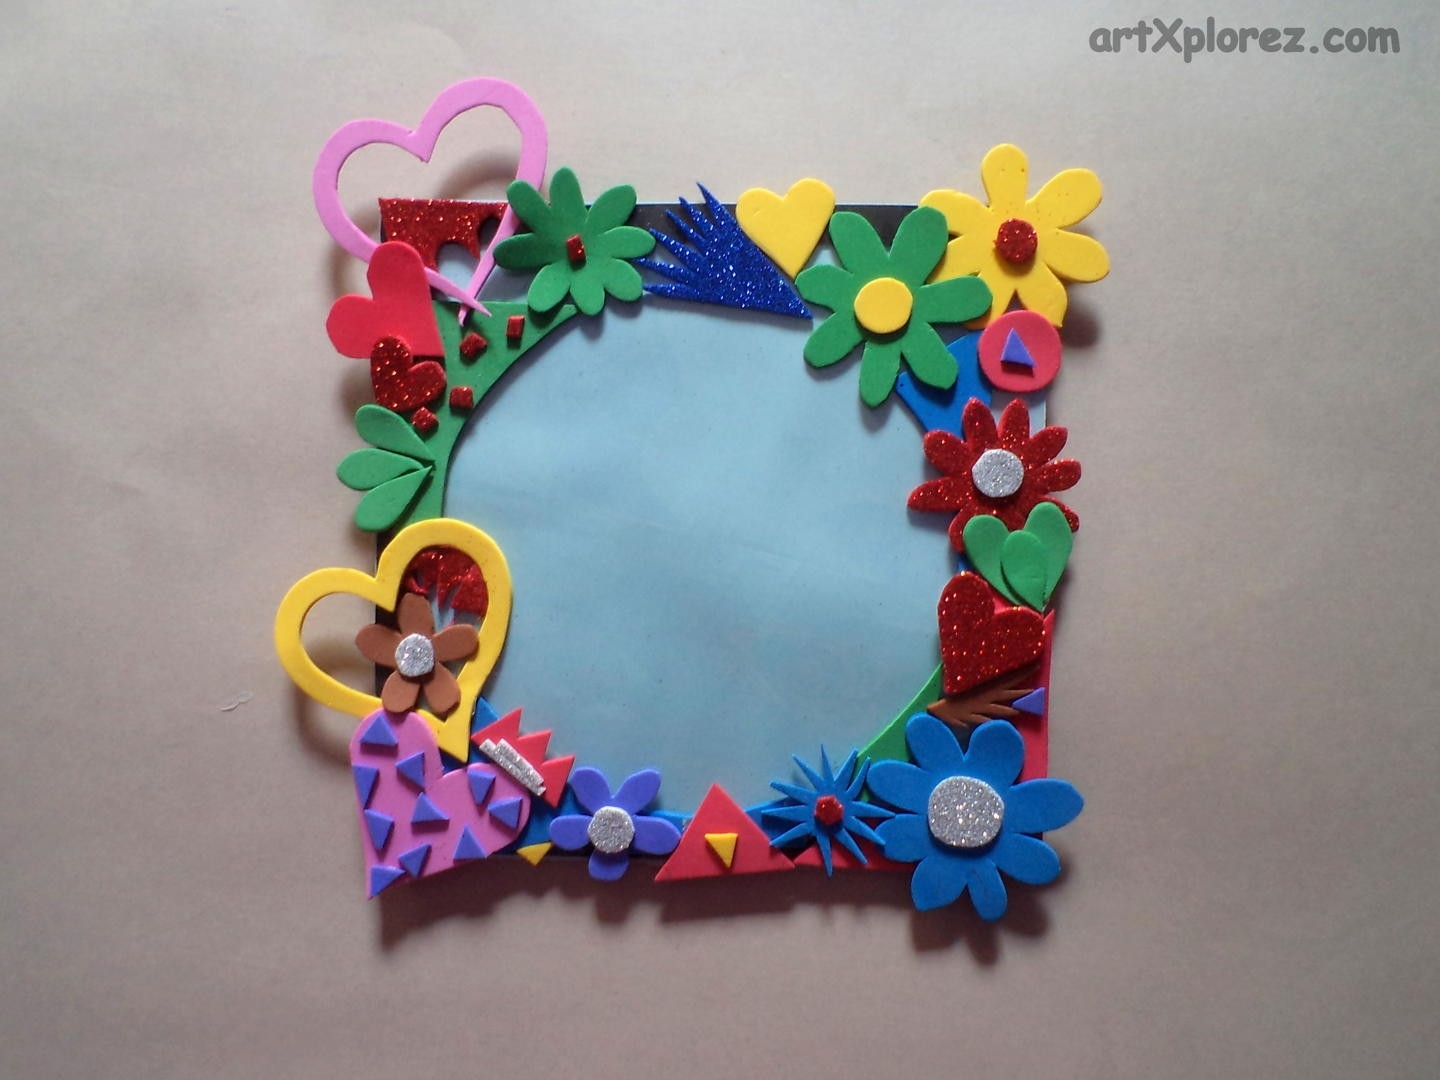 Step Arrange Paste Them According Your Interest Keep - Home Art with Handmade Crafts Using Waste Materials 26885